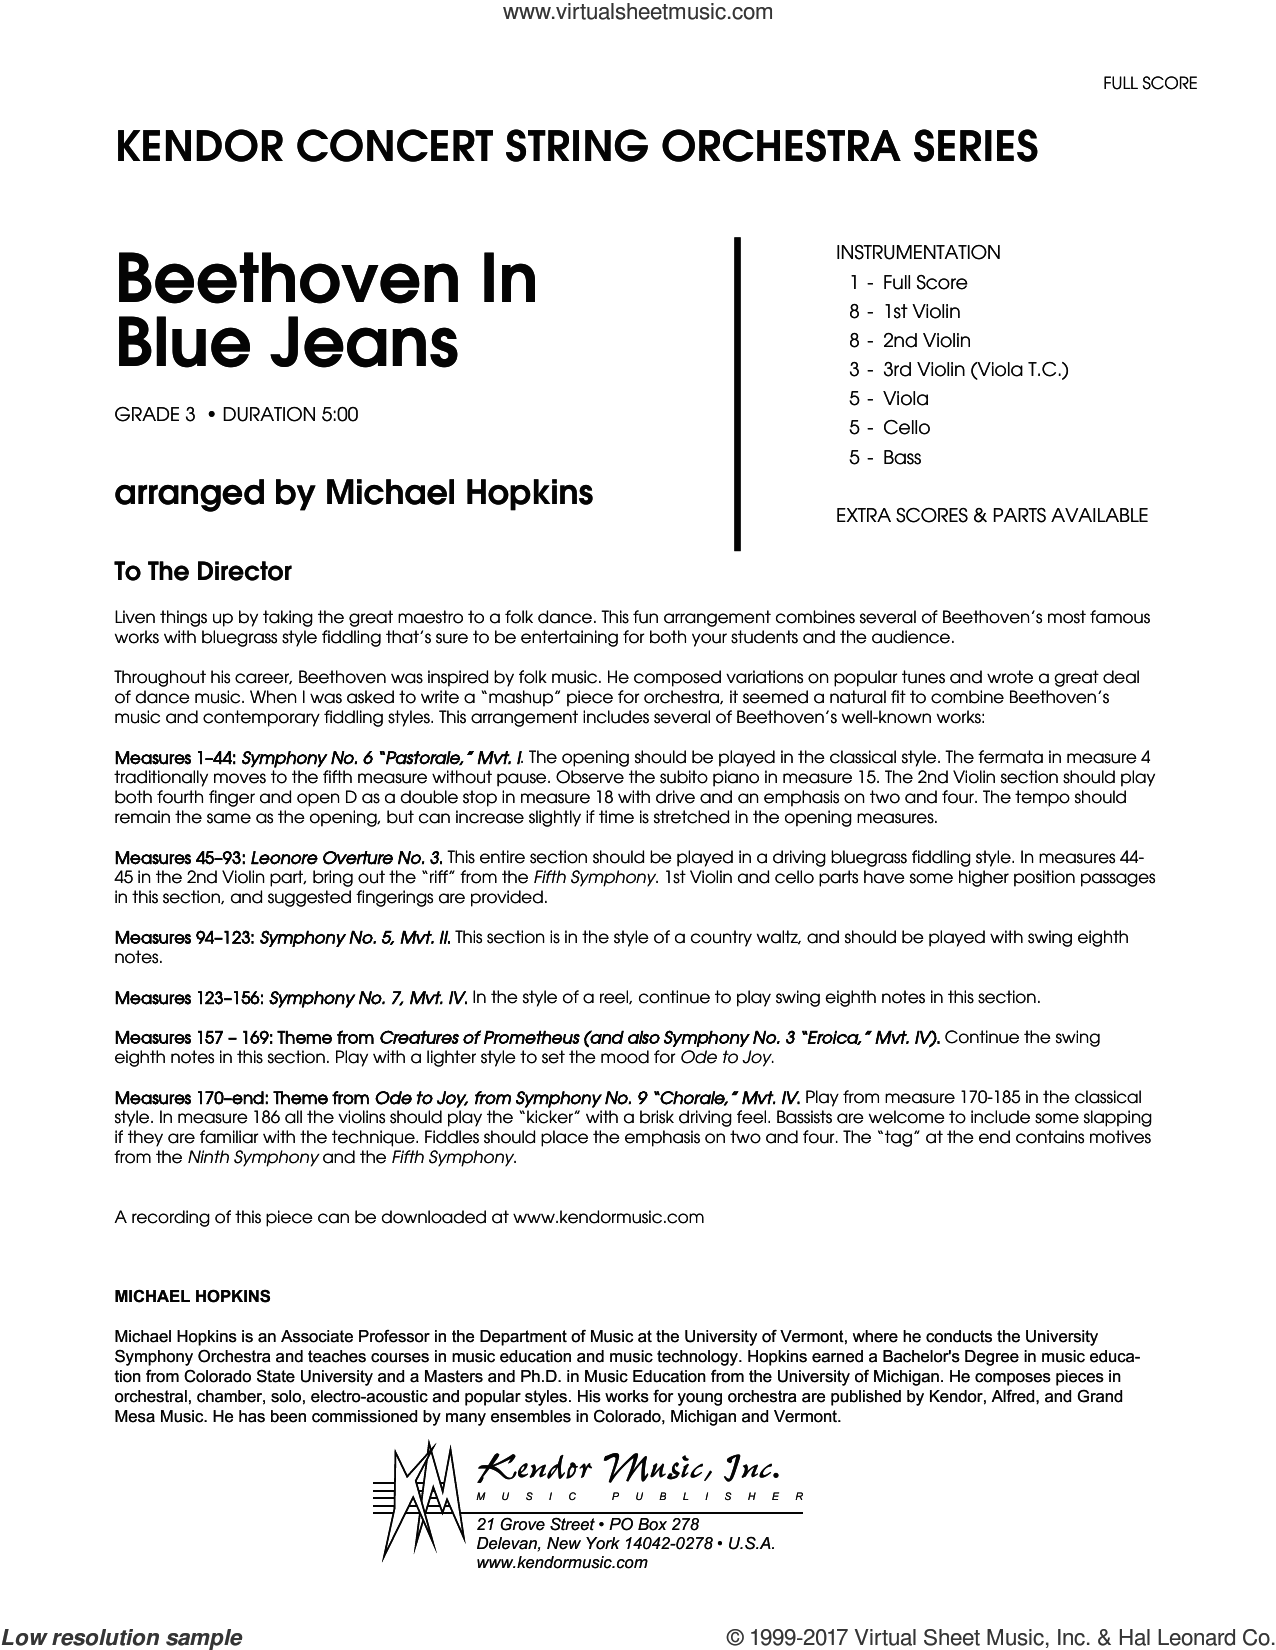 Beethoven In Blue Jeans (COMPLETE) sheet music for orchestra by Ludwig van Beethoven and Michael Hopkins, classical score, intermediate